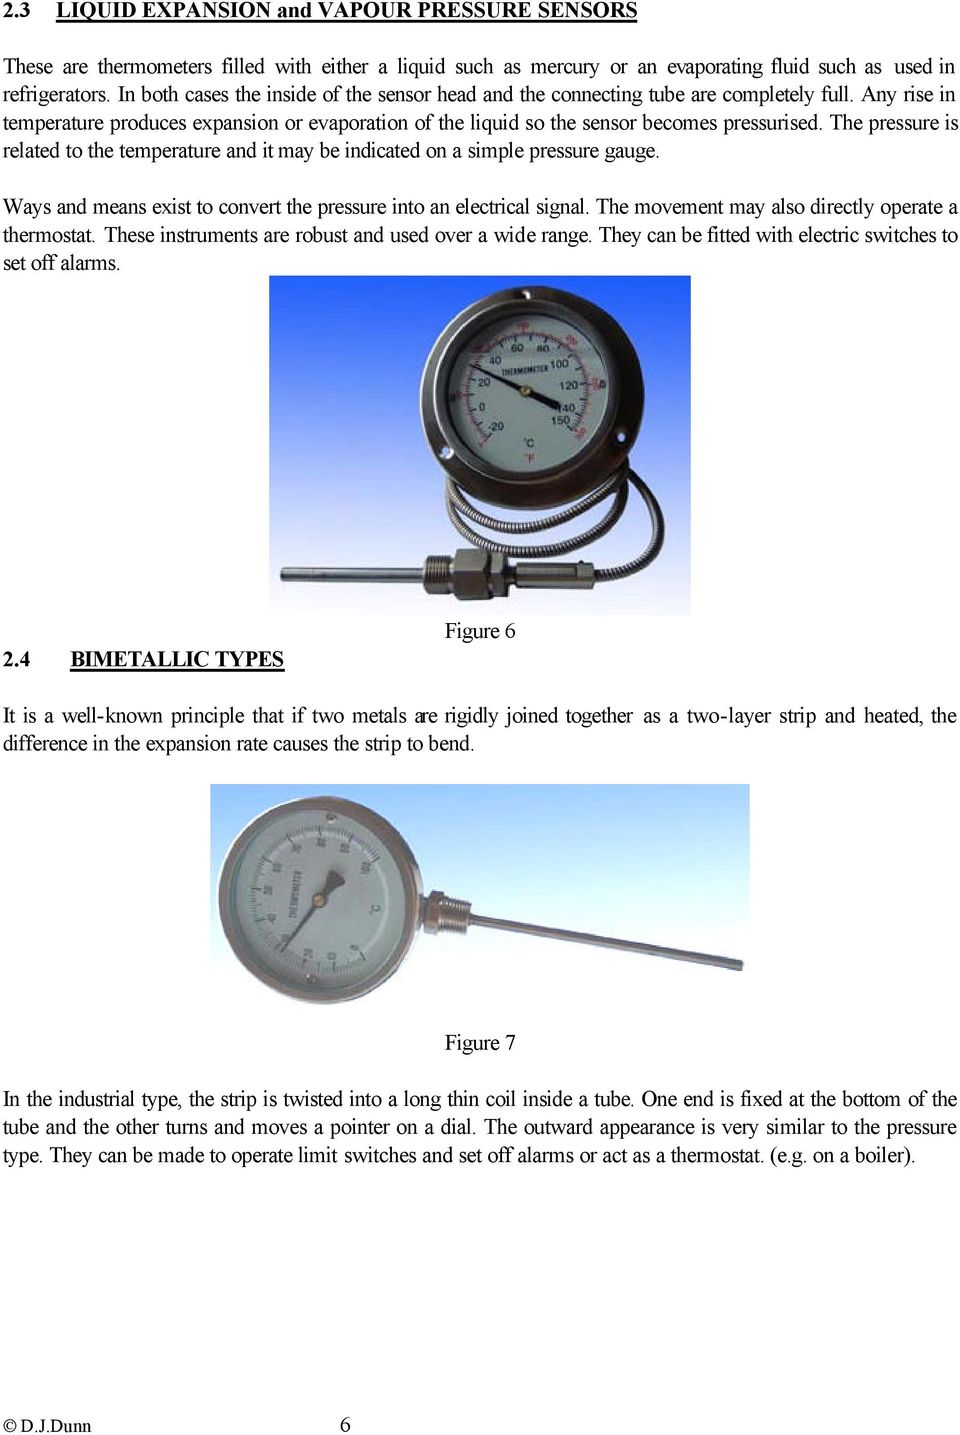 The pressure is related to the temperature and it may be indicated on a simple pressure gauge. Ways and means exist to convert the pressure into an electrical signal.